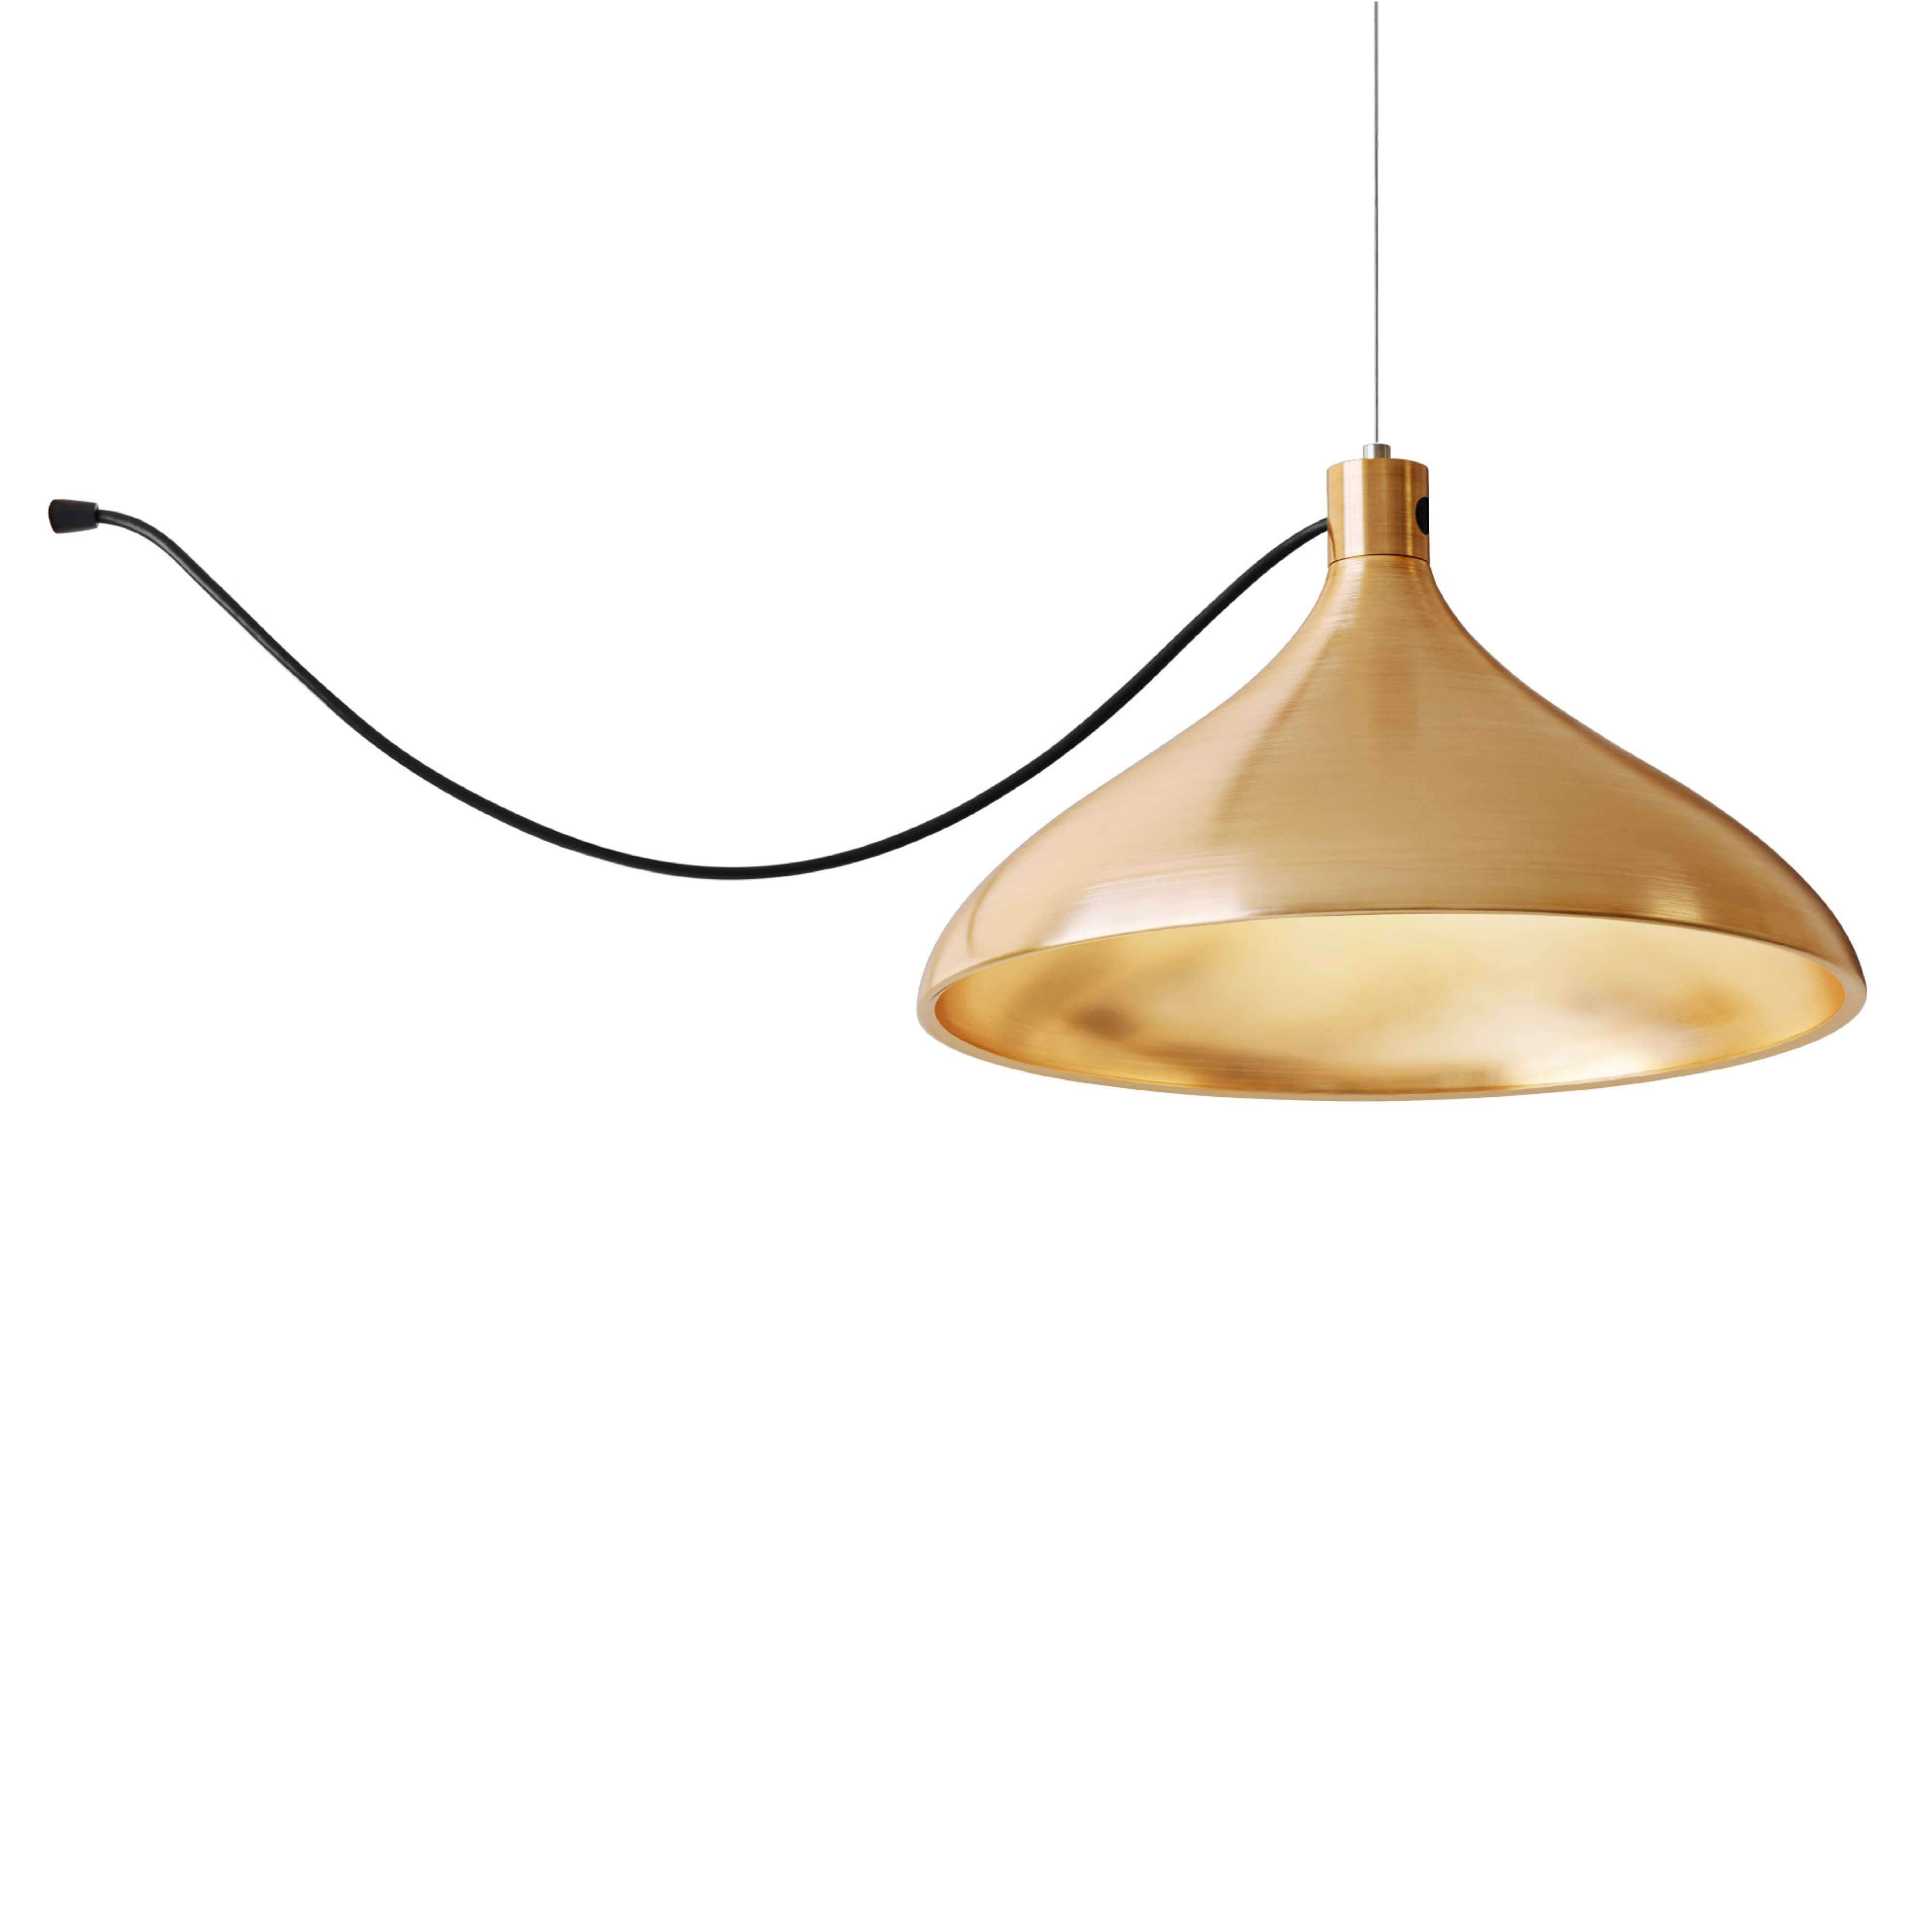 Swell String Indoor/Outdoor Pendant Light: Brass